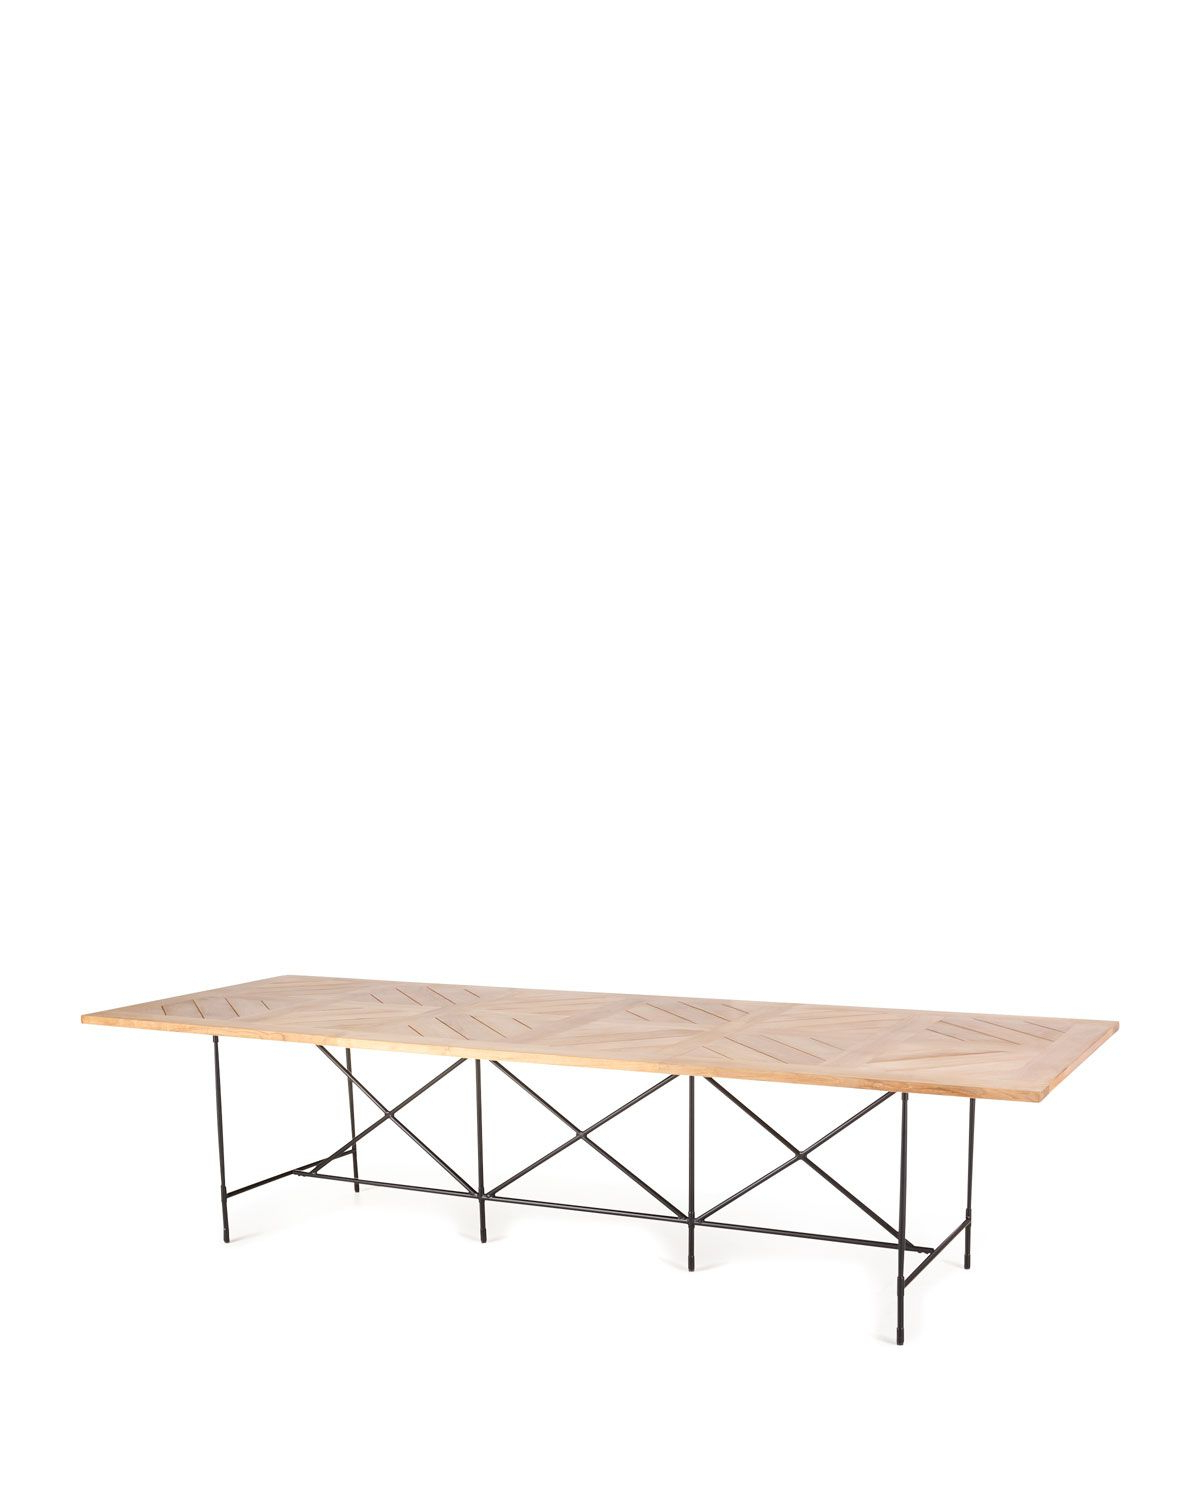 Preferred Avery Rectangular Dining Tables Intended For Avery Neoclassical 122L Outdoor Dining Table In  (View 15 of 25)